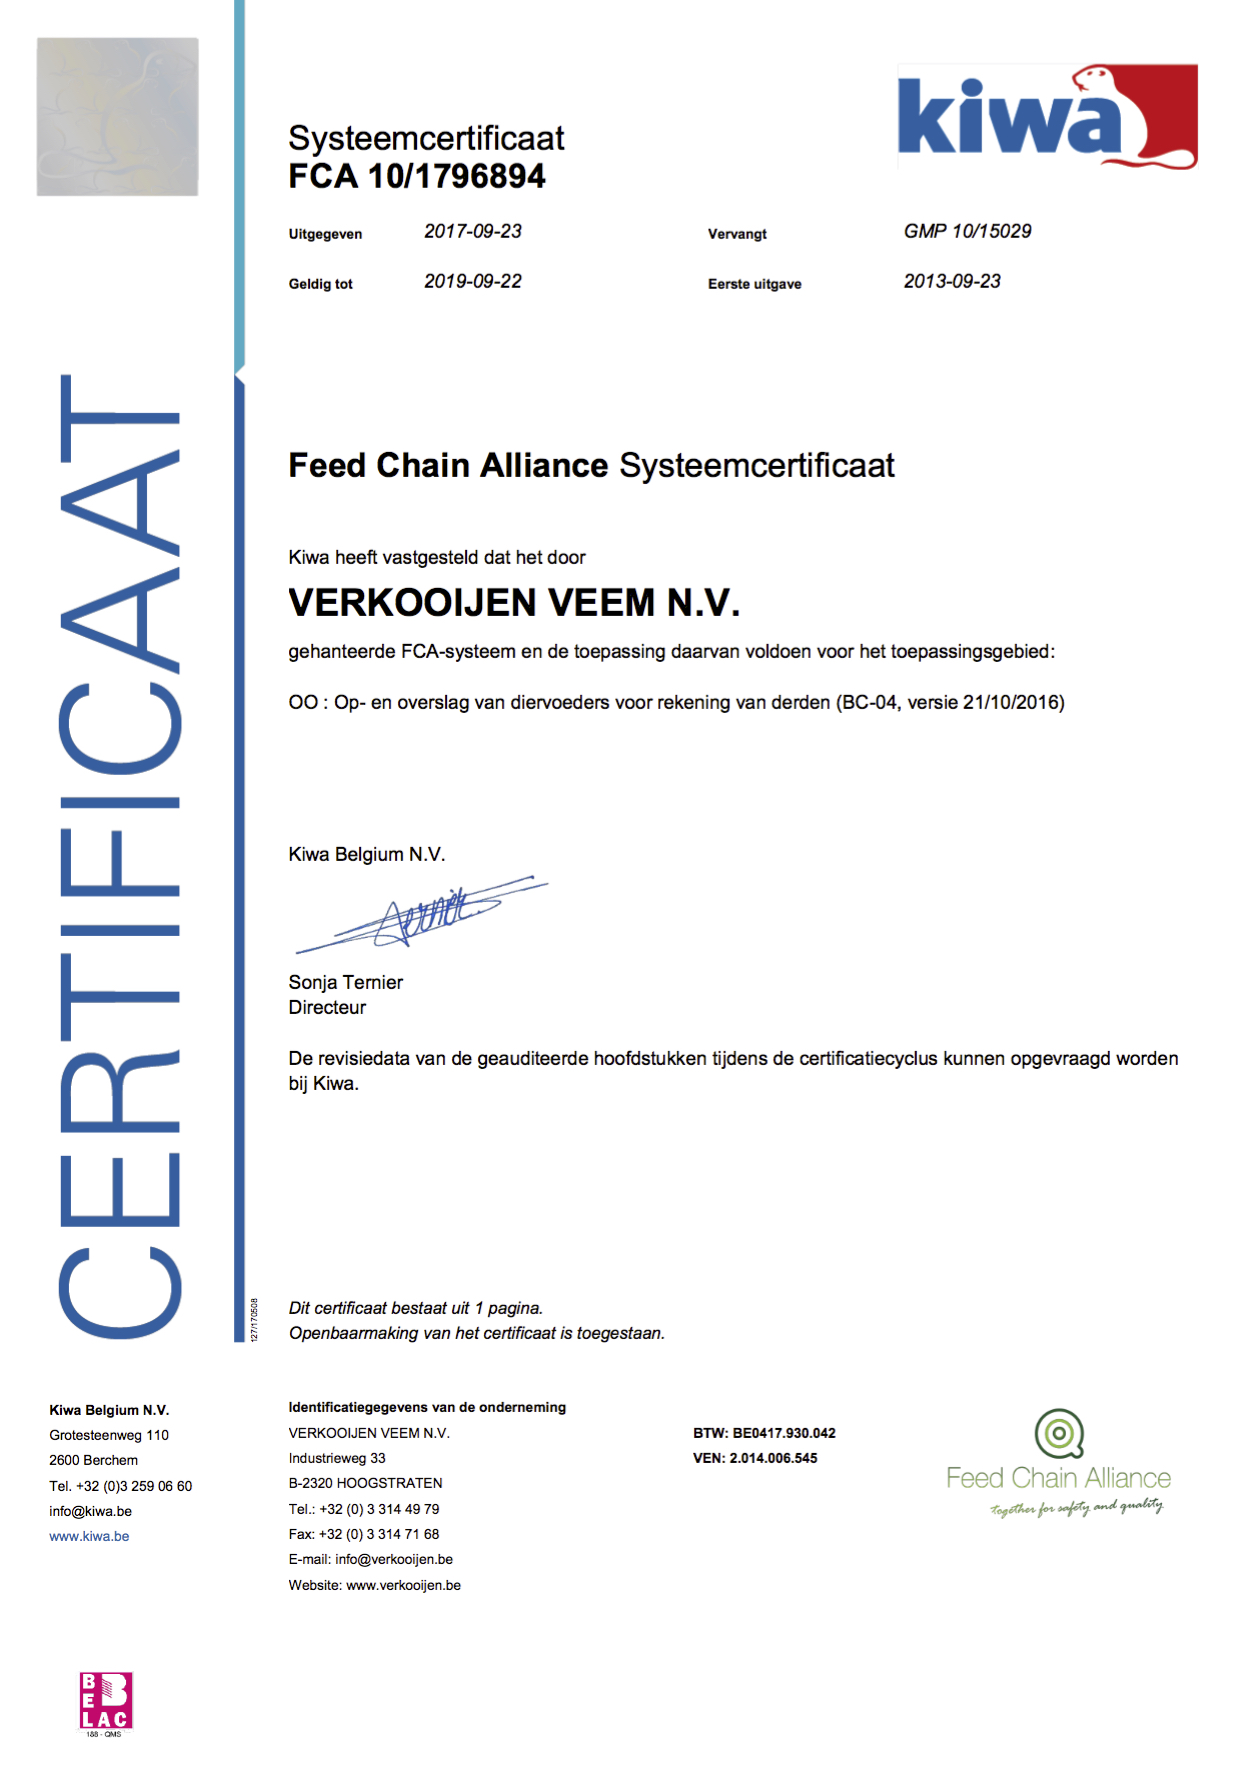 Feed Chain Alliance Systeemcertificaat